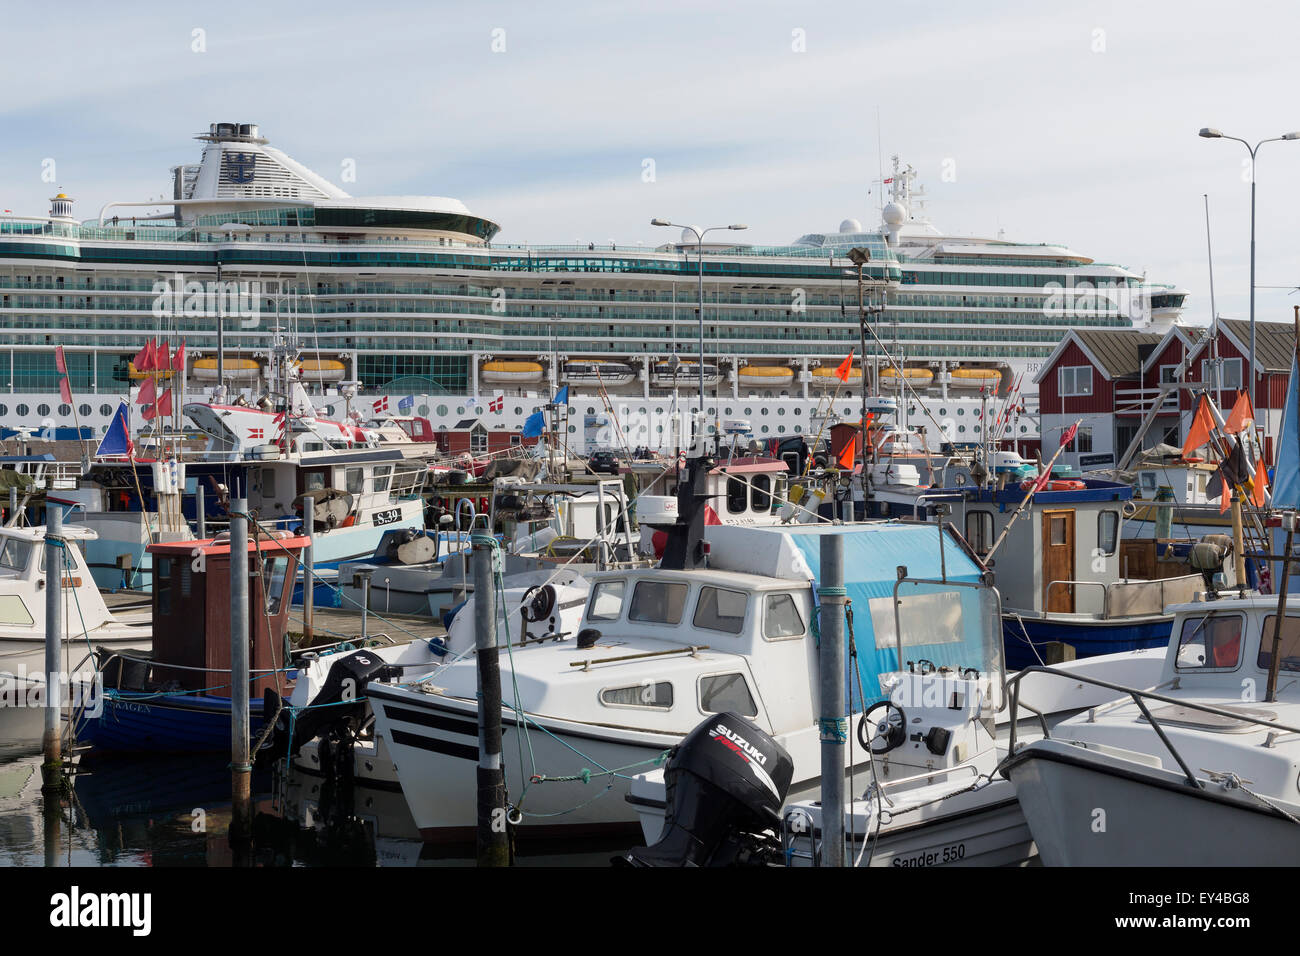 The cruise vessel Brilliance of the Seas at Skagen. Stock Photo